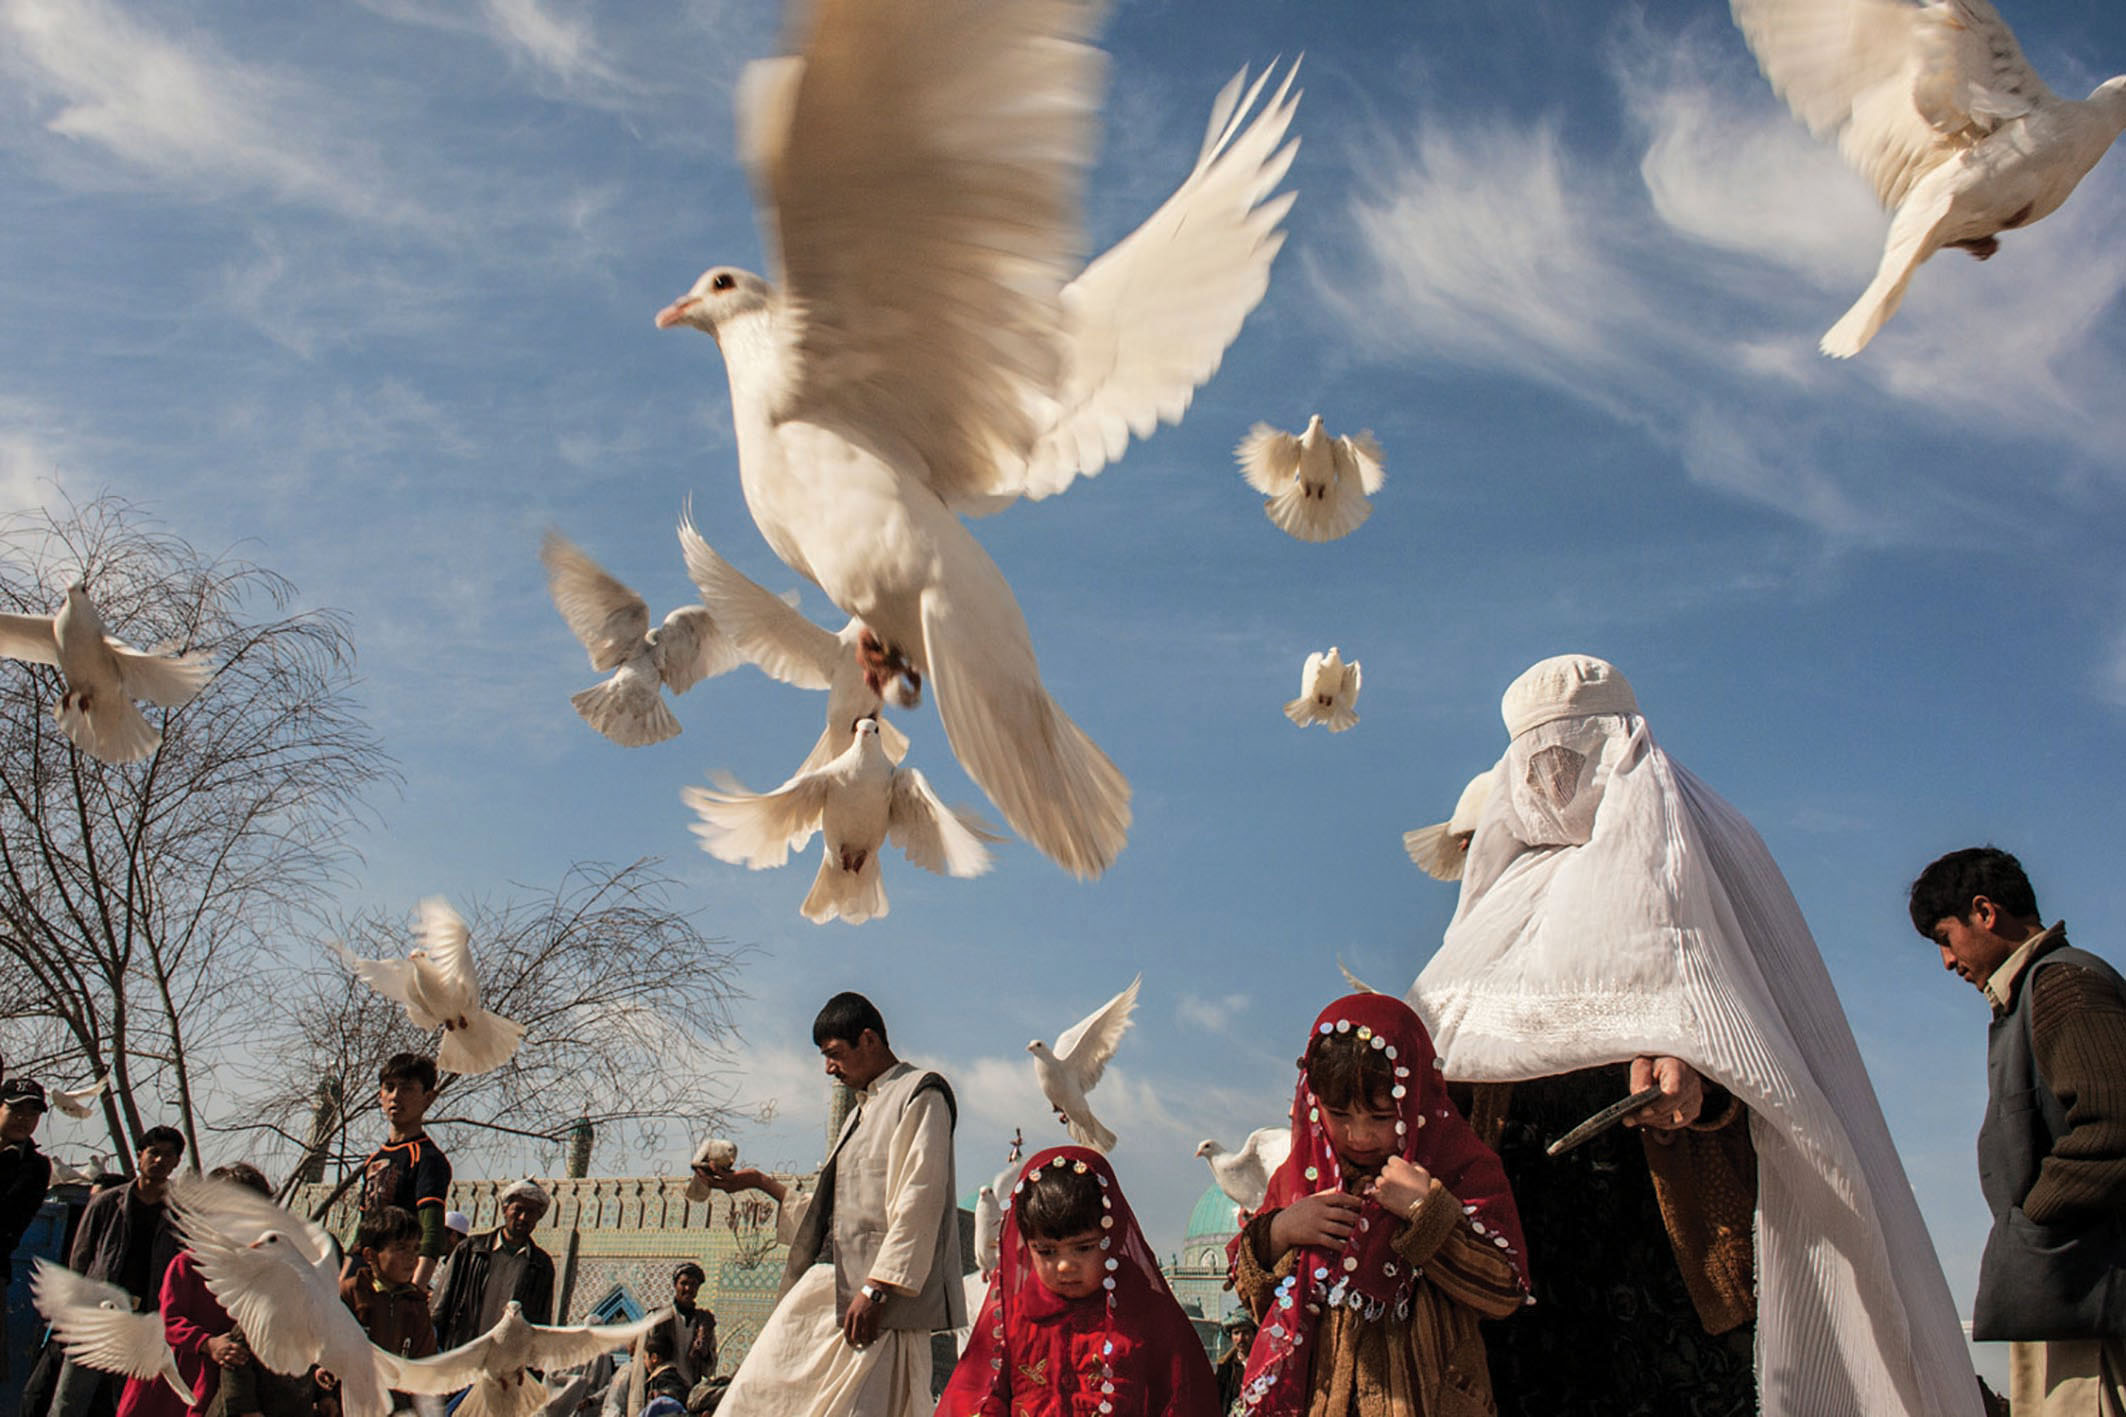 White pigeons take off as Afghans come to feed the birds at the Blue mosque in Mazar-E-Sharif. 25 November 2009. Photo: Paula Bronstein